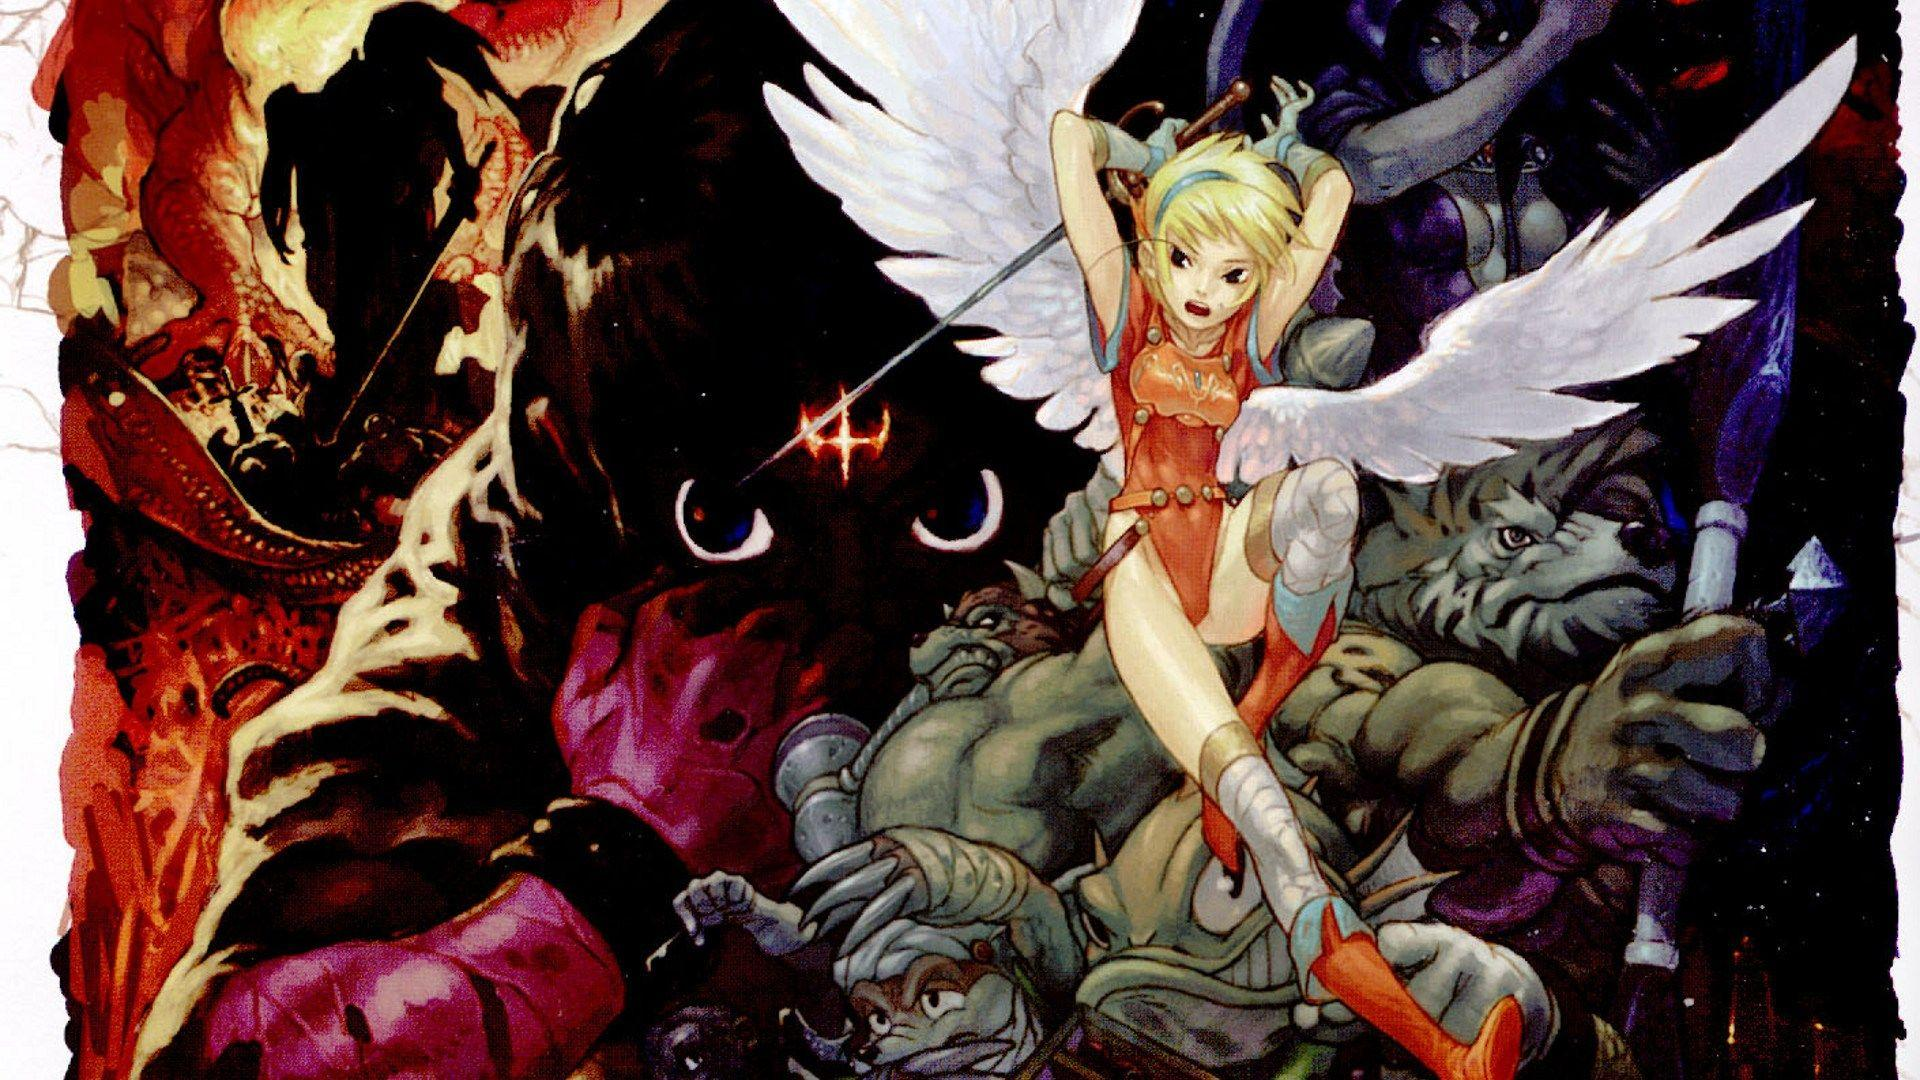 Breath Of Fire 3 Wallpapers Wallpaper Cave